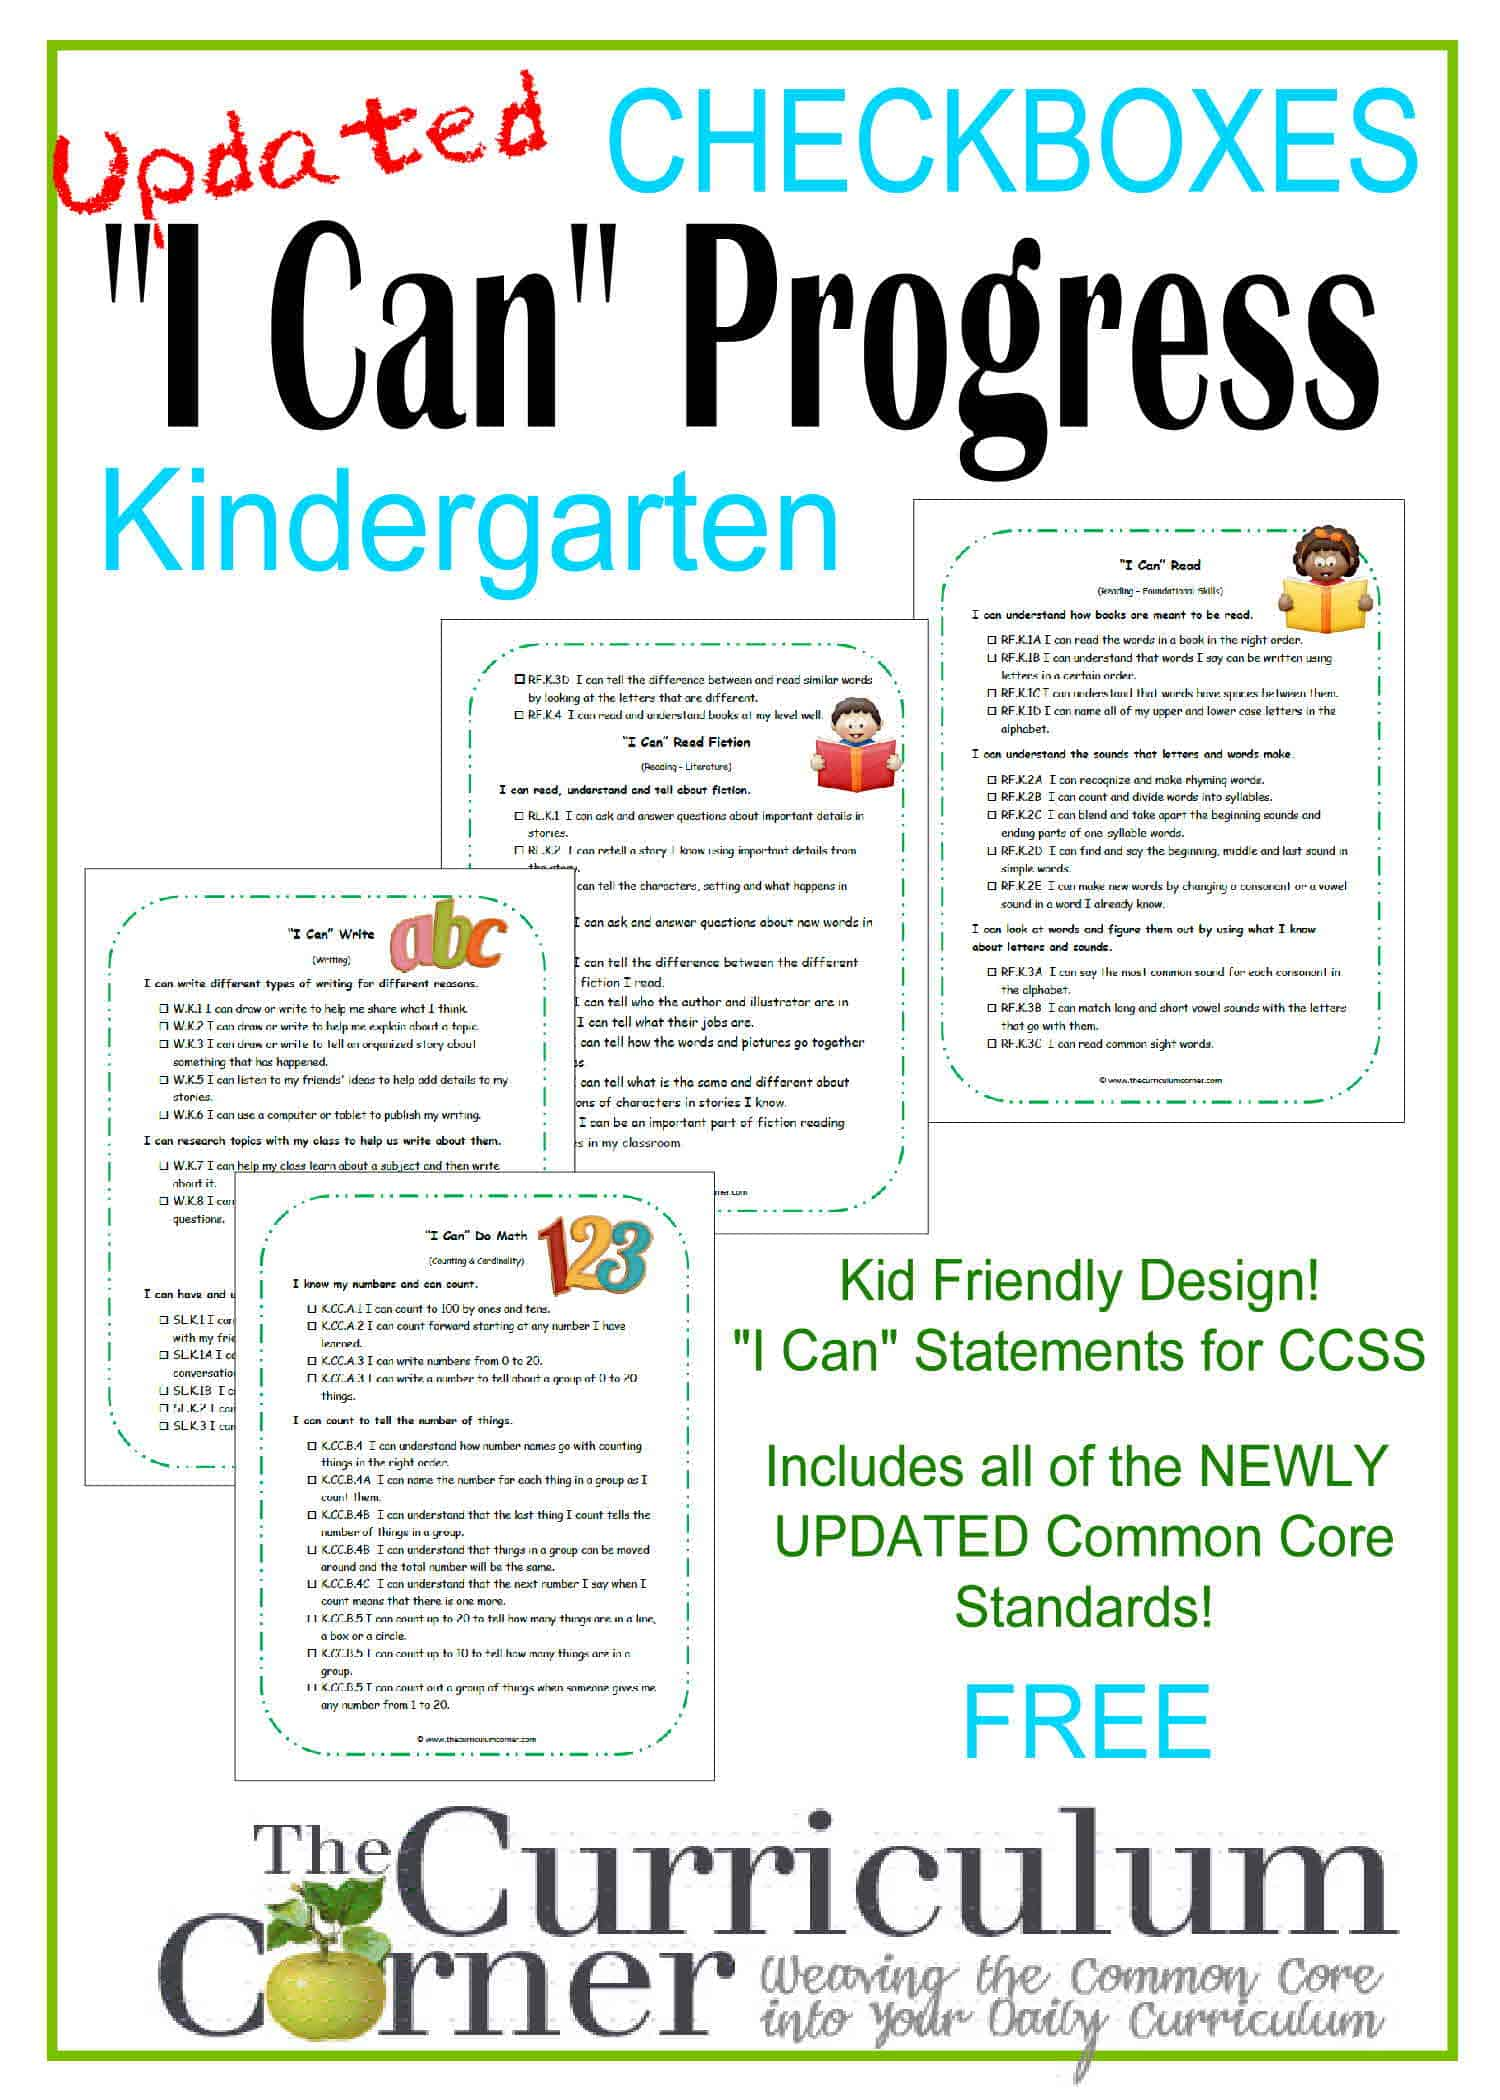 Kid Clip Art I Can Statements Kindergarten Ccss Checkboxes